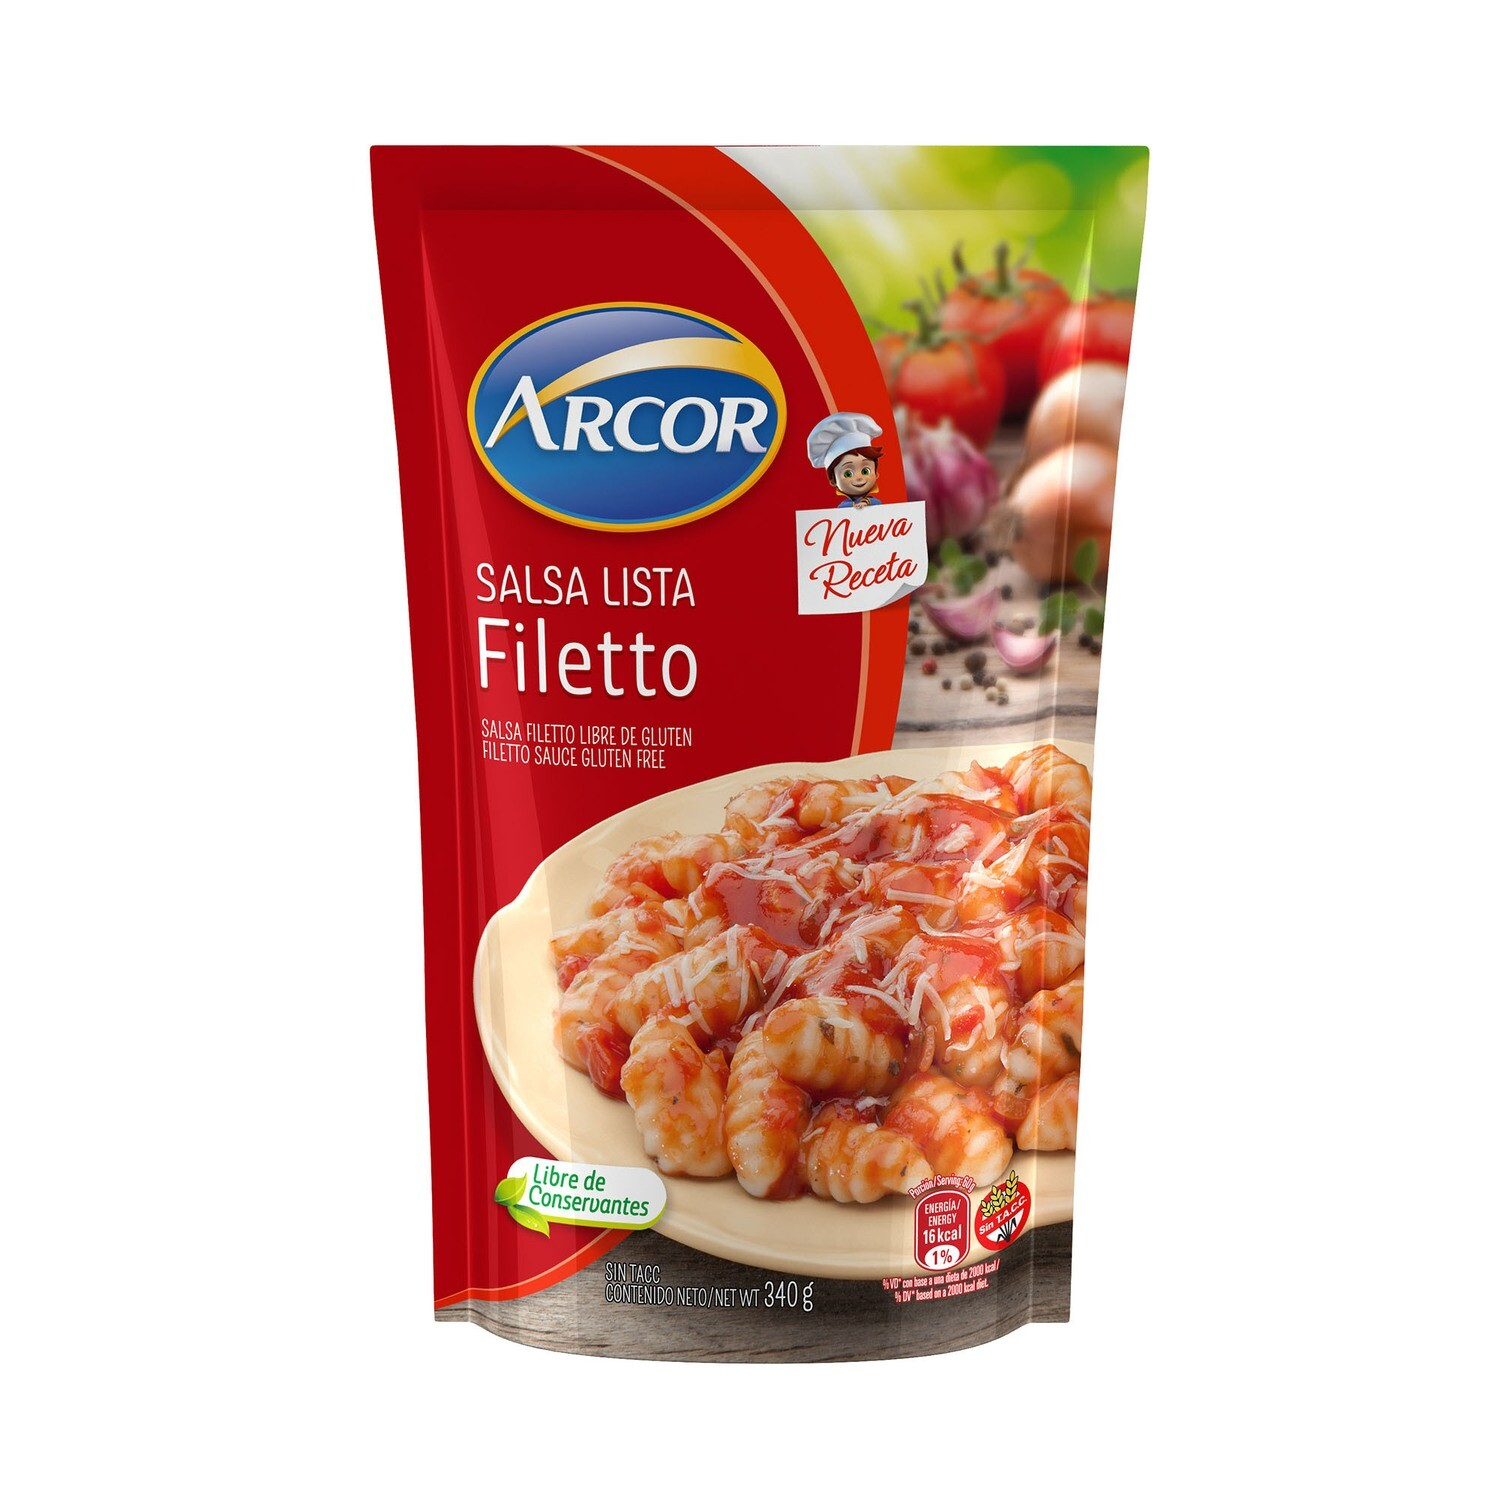 SALSA FILETTO, ARCOR, 340 GR